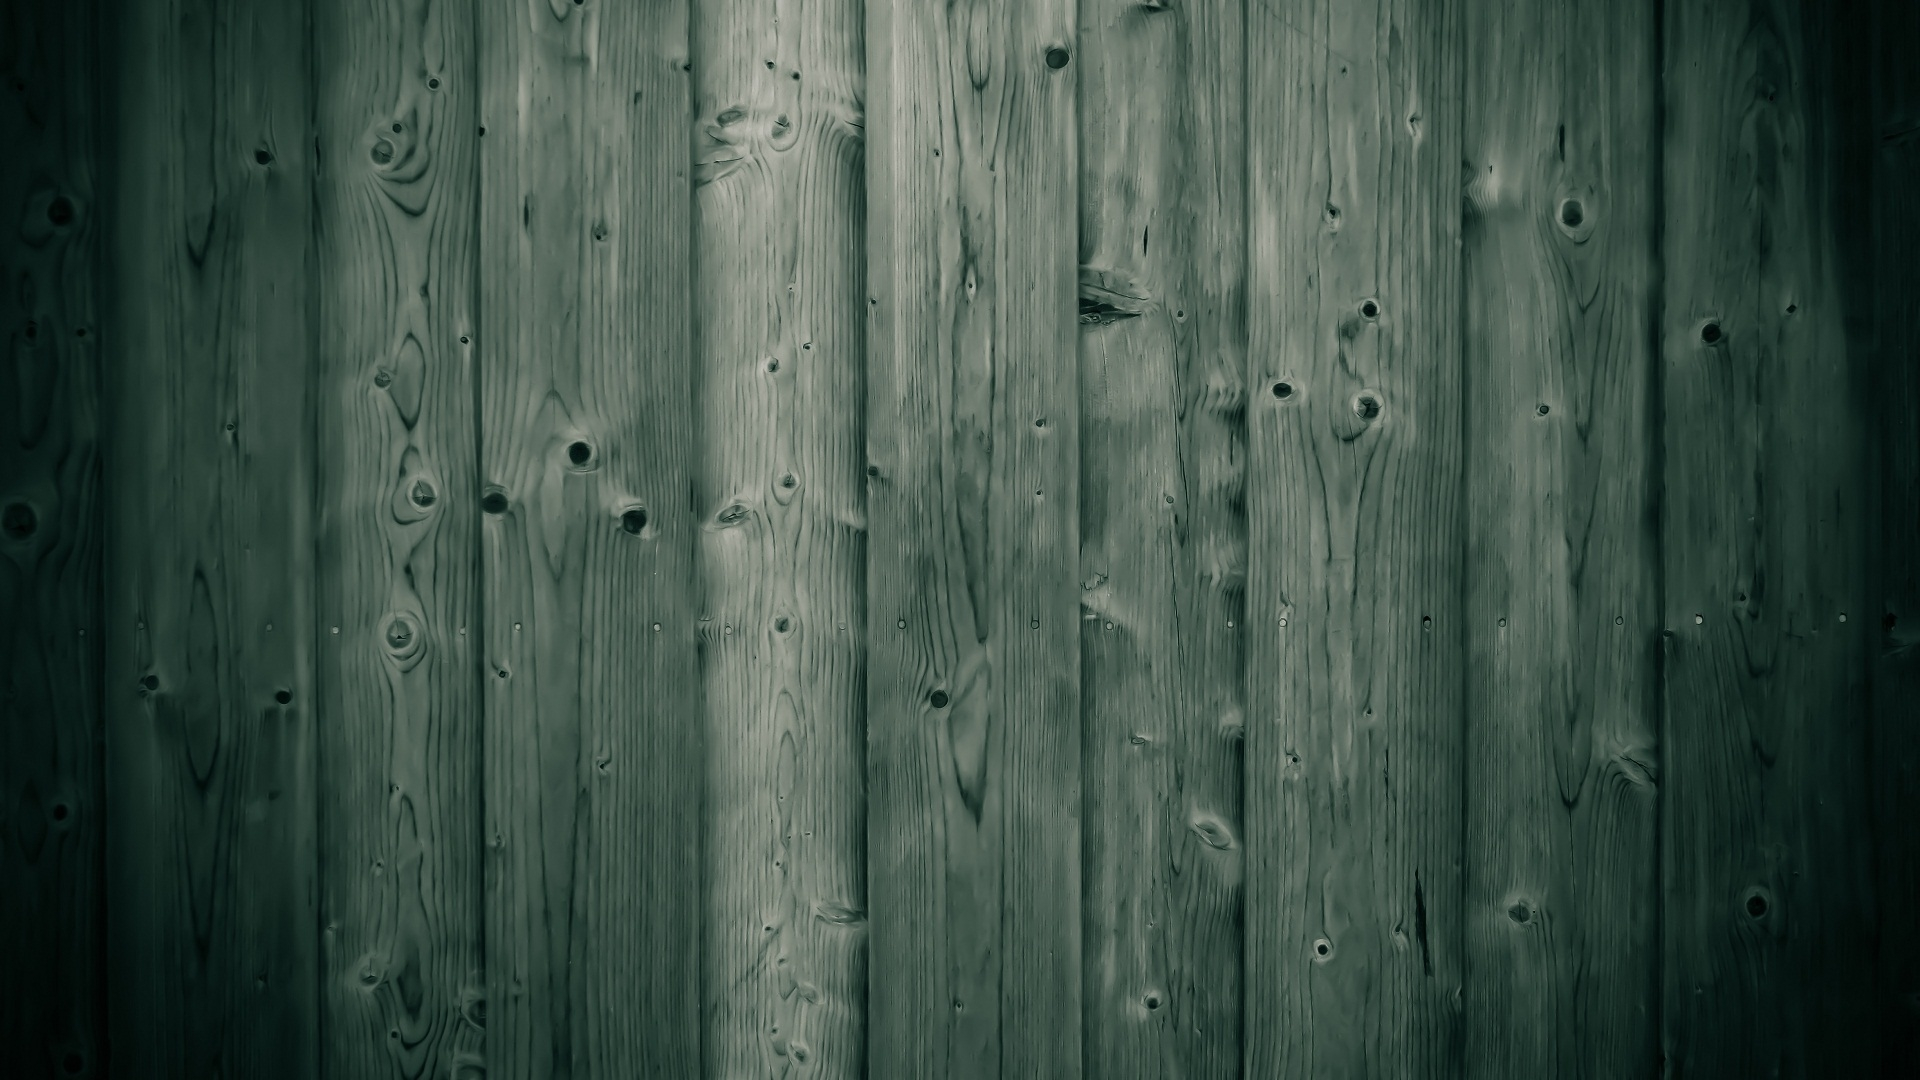 Wood texture wallpapers full hd wallpaper search - Wallpaper 1920x1080 Wooden Background Texture Boards Shade Full Hd